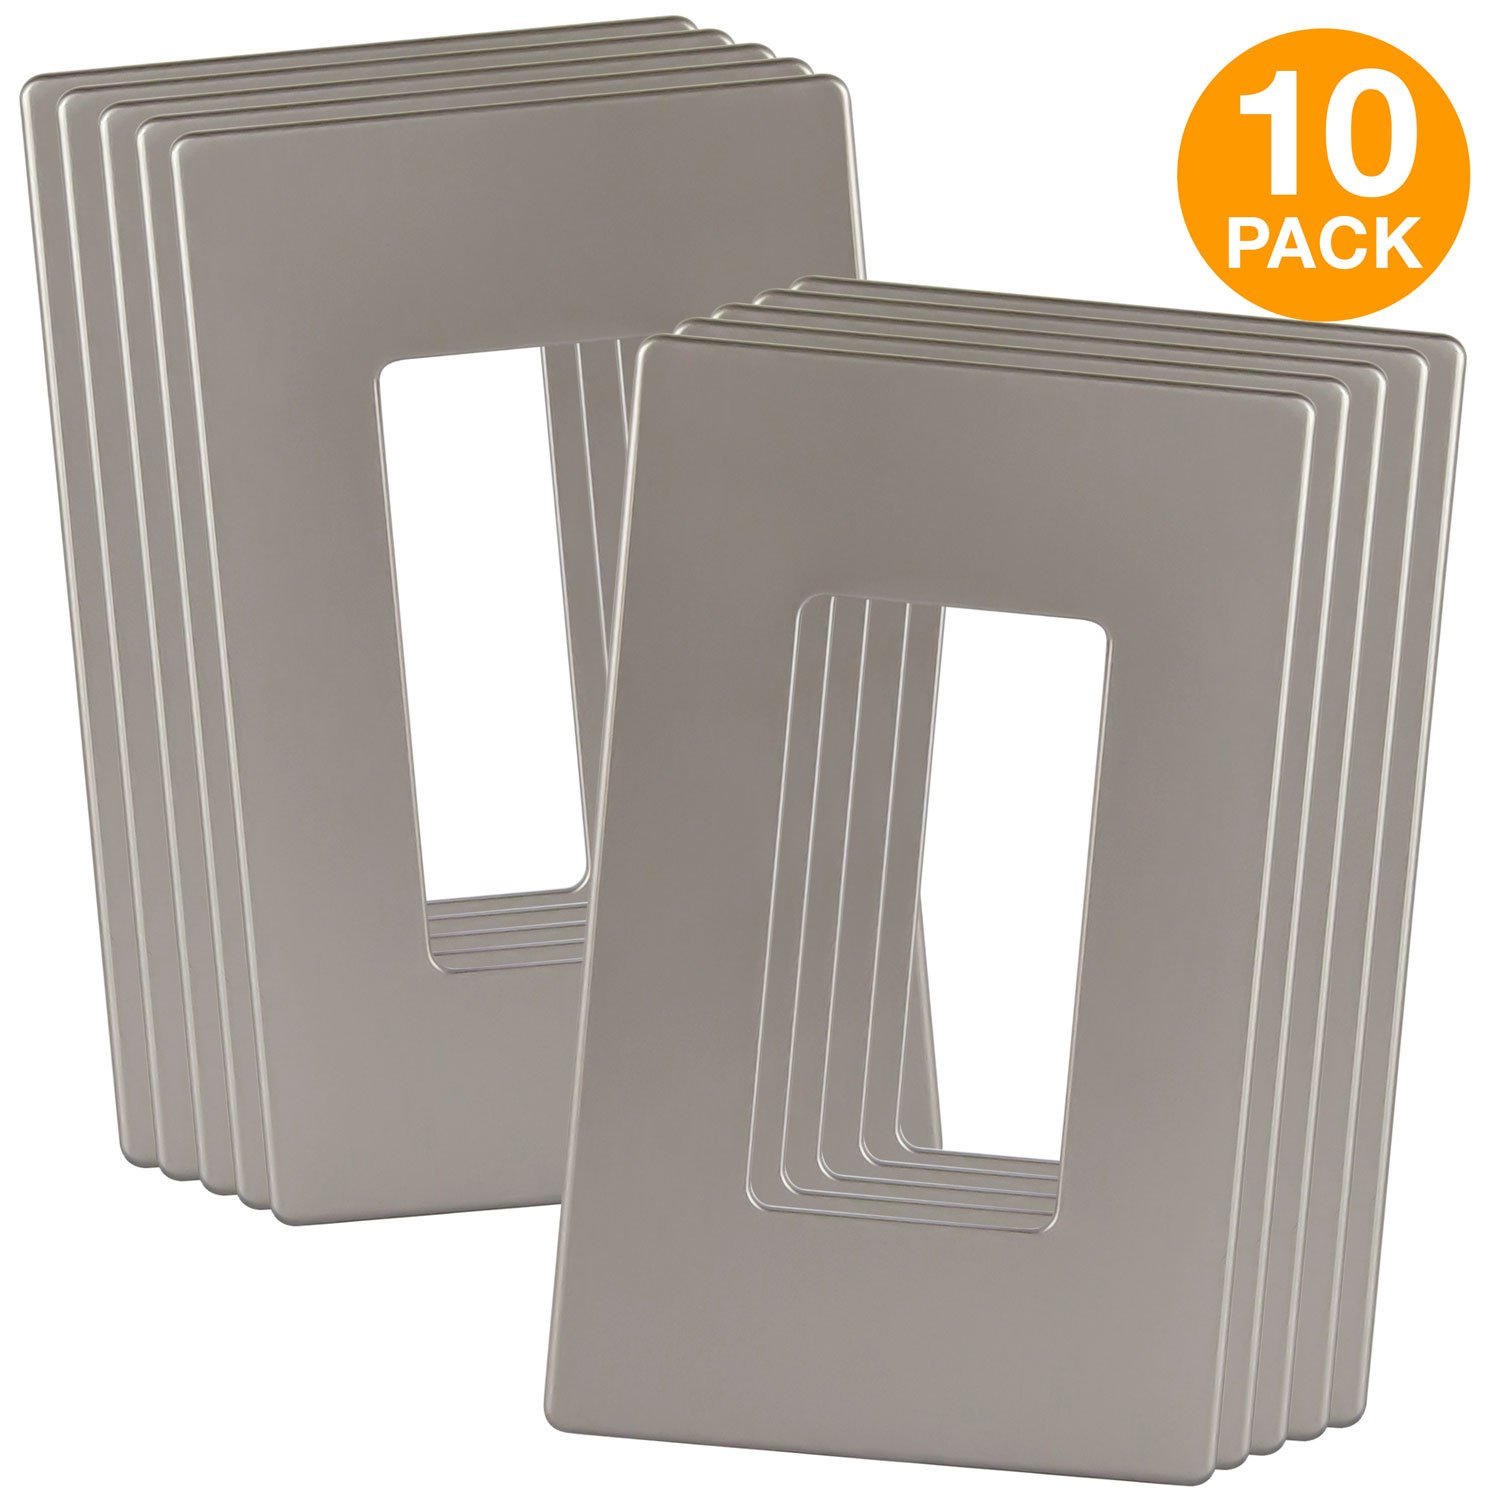 ENERLITES Elite Series Screwless Decorator Wall Plates Child Safe Outlet Covers, Size 1-Gang 4.68'' H x 2.93'' L, Unbreakable Polycarbonate Thermoplastic, SI8831-NK-10PCS, Nickel (10 Pack)